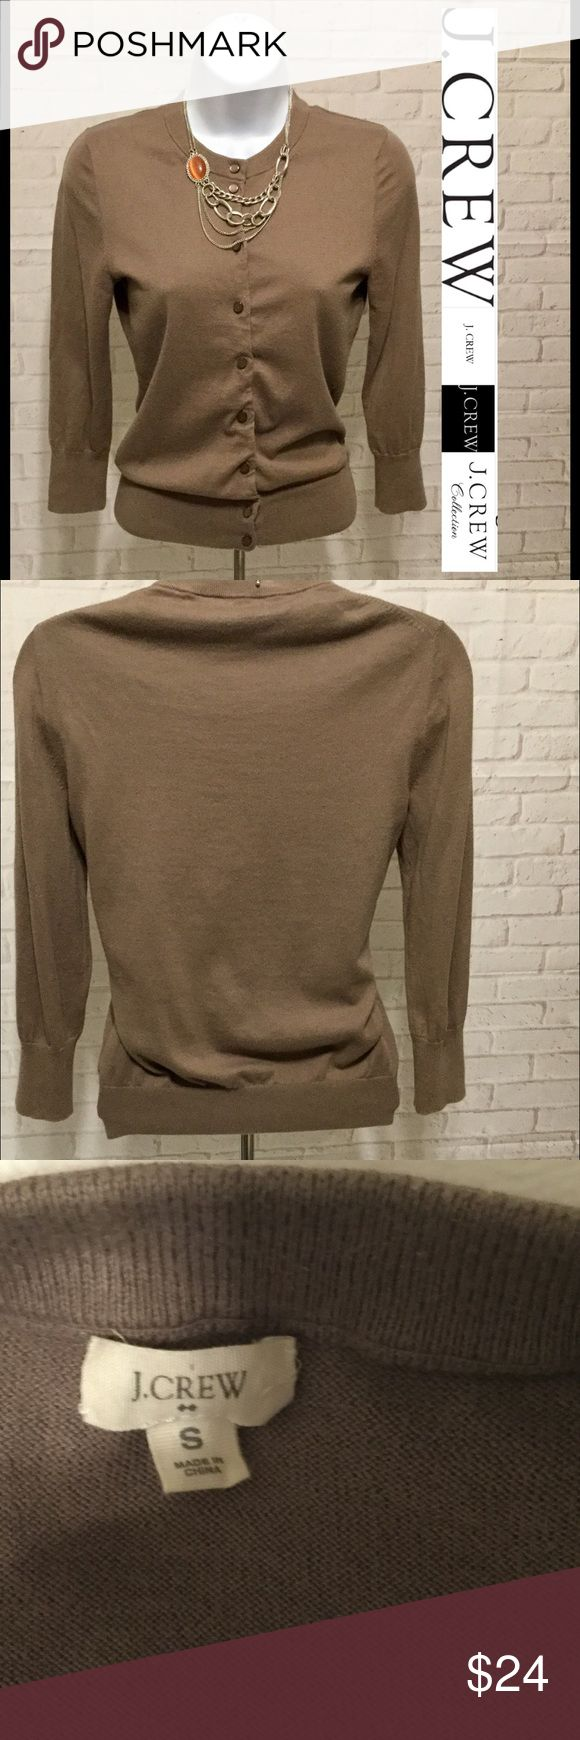 J. Crew sweater brown women's small 3/4 sleeve This sweater is in EXCELLENT CONDITION FLAWLESS and comes from a smoke free home 🏡.  Buy with confidence I am a top rated seller, mentor and fast shipper.  Don't forget to bundle and save.  Thank you. J. Crew Sweaters Cardigans